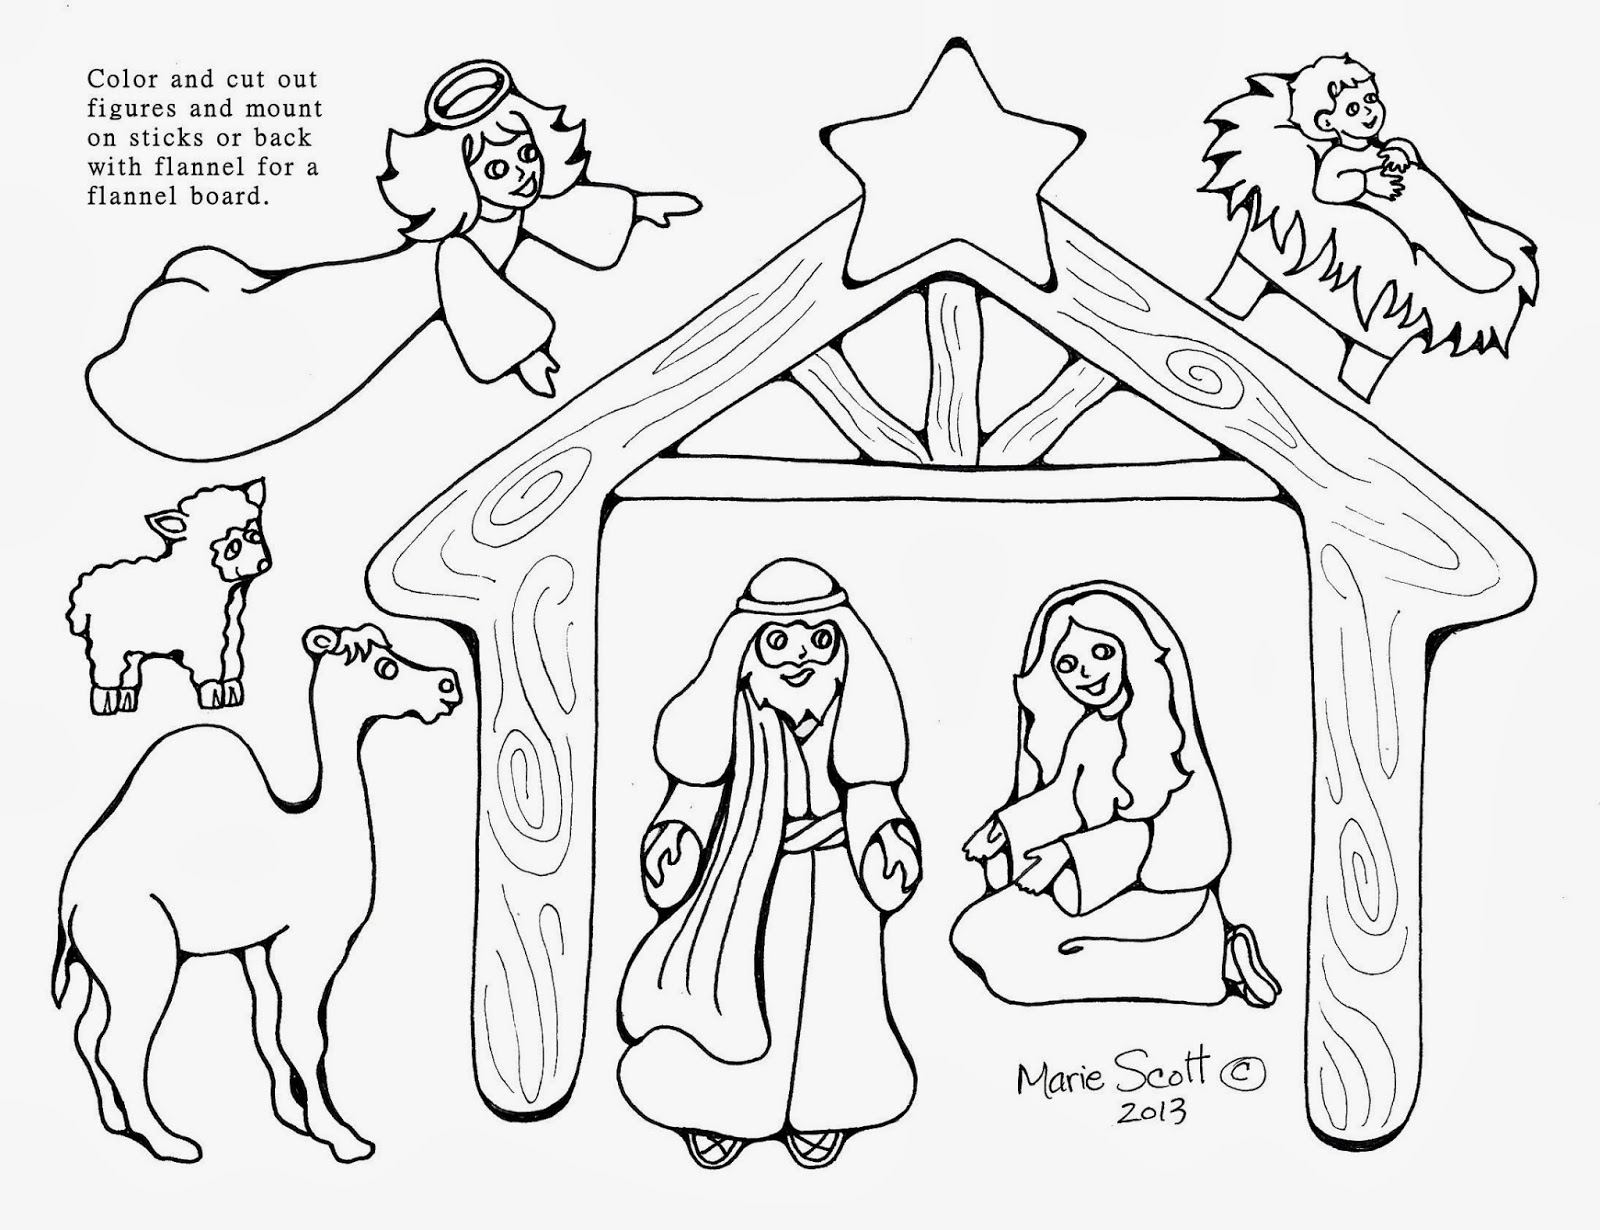 nativity coloring sheets printable printable nativity scene coloring pages for kids cool2bkids nativity printable coloring sheets